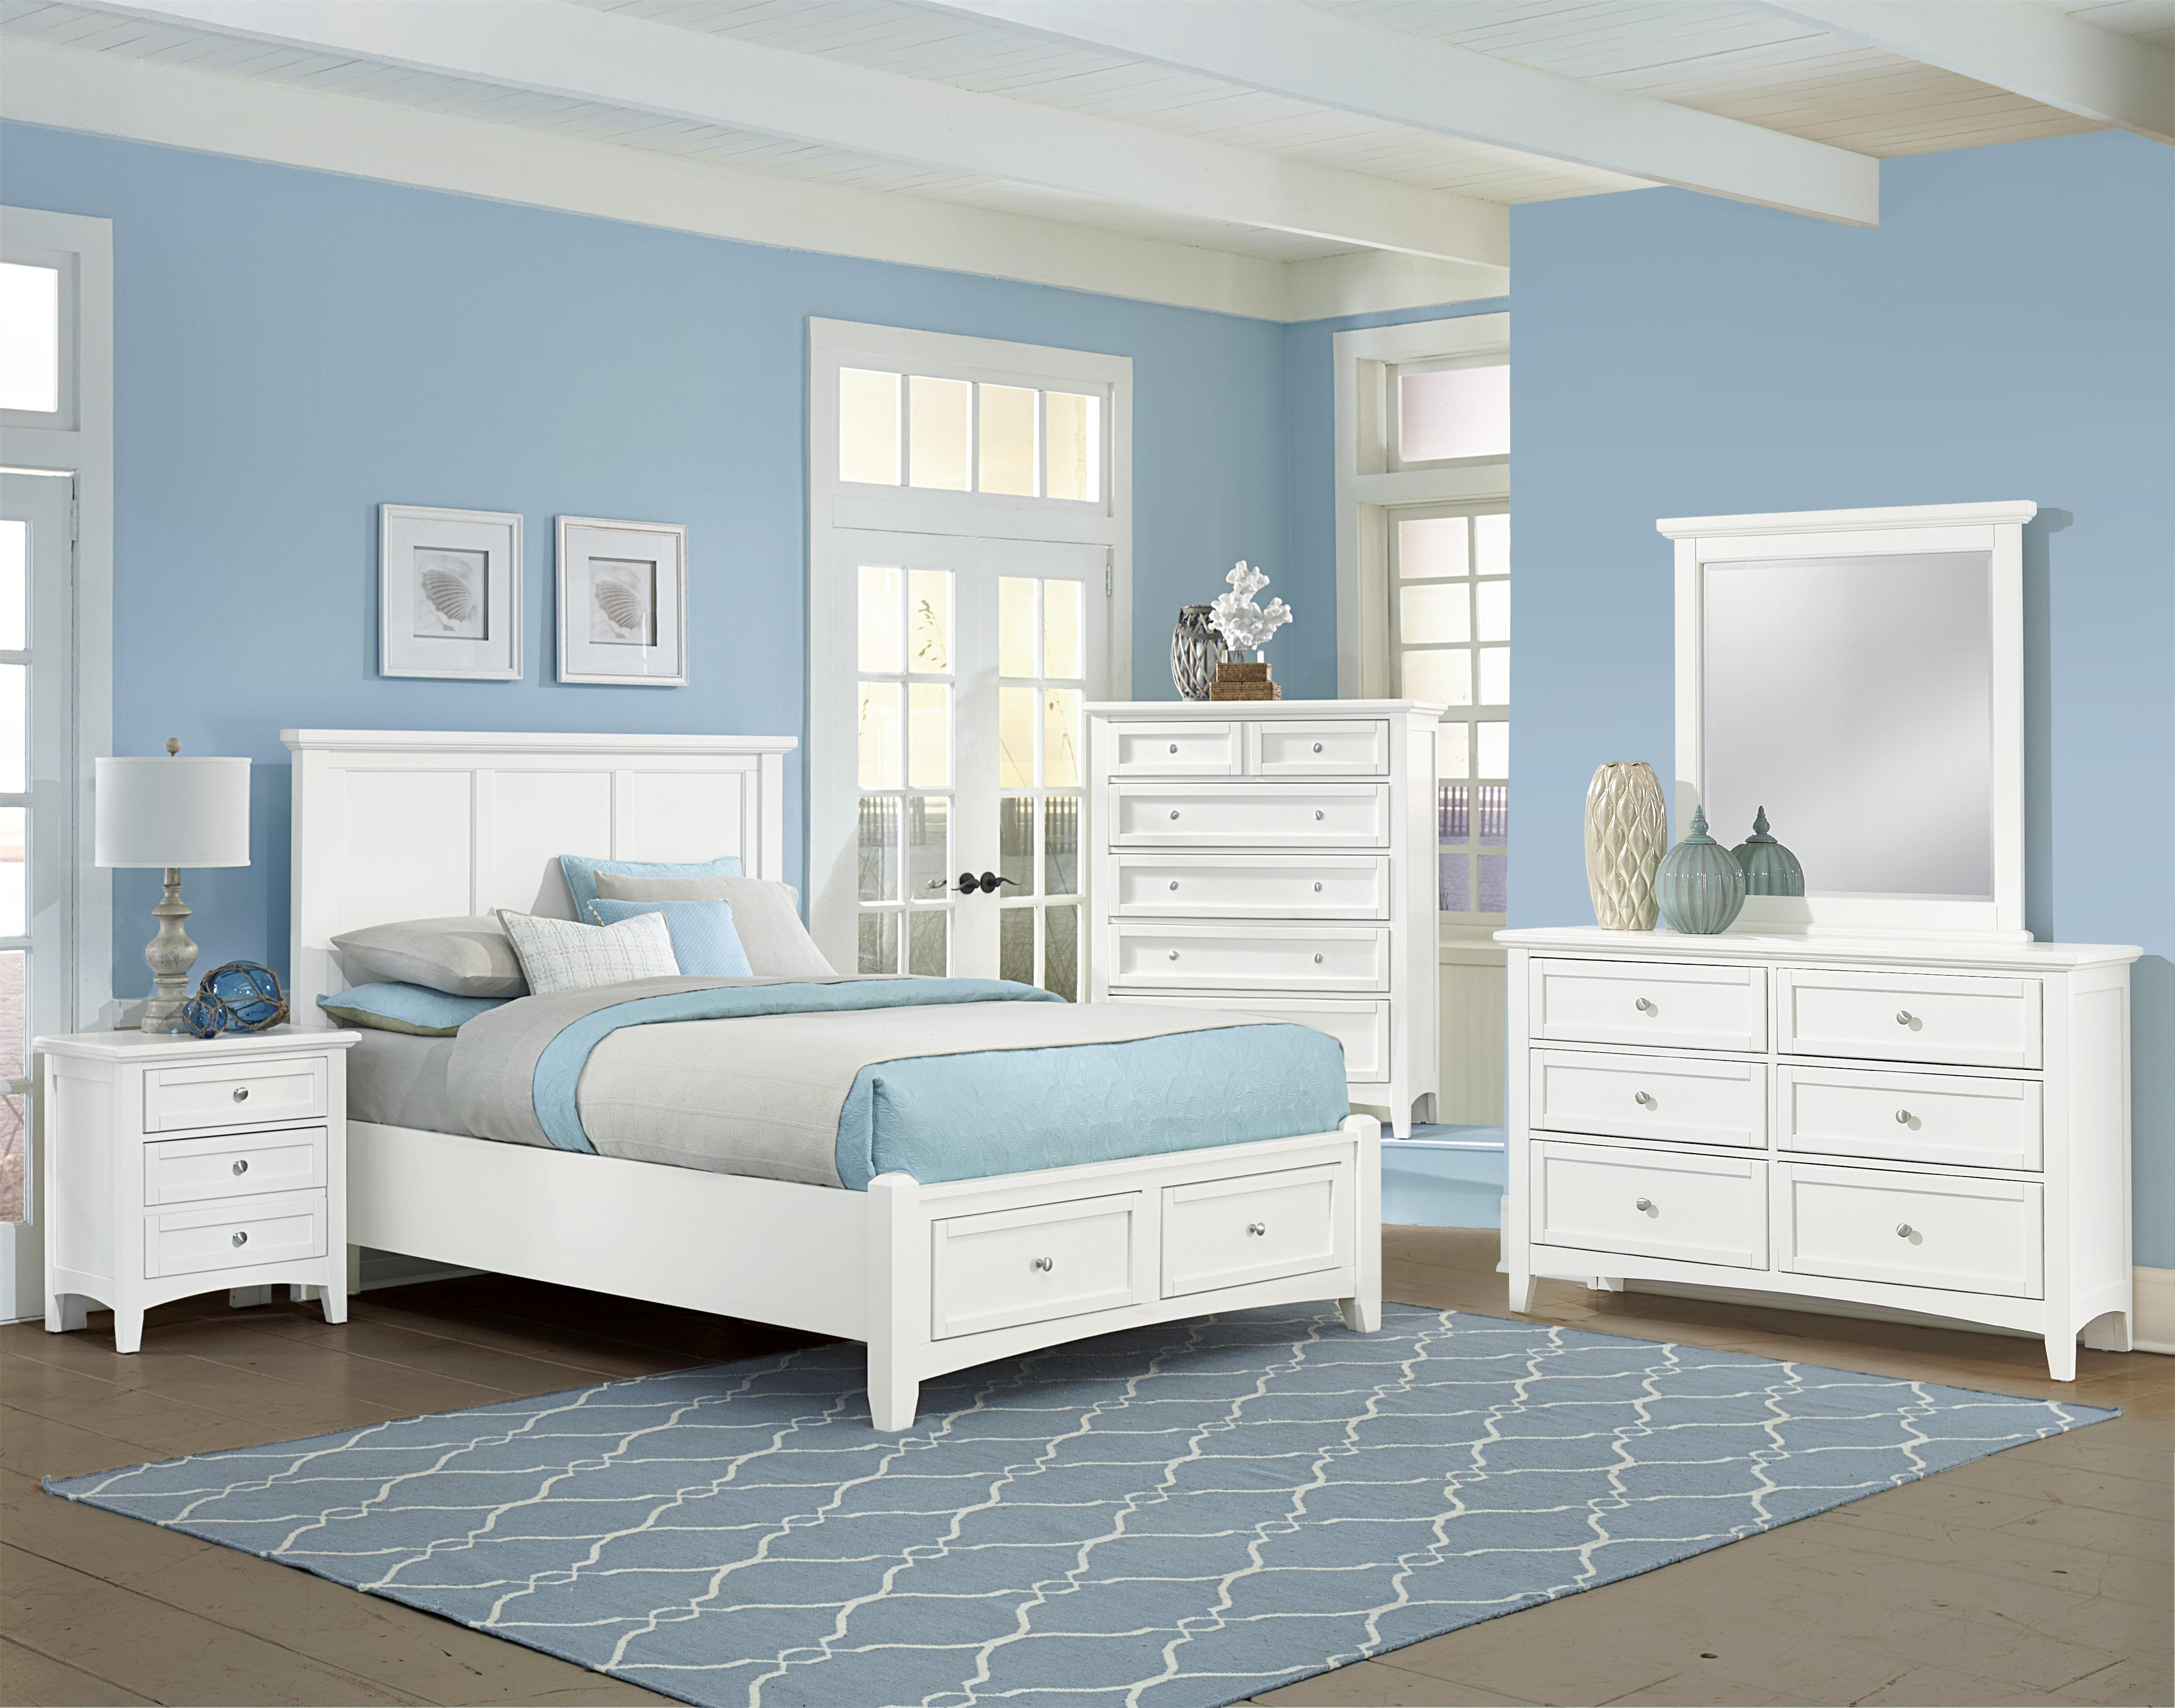 Bonanza Queen Bedroom Group by Vaughan Bassett at Home Collections Furniture